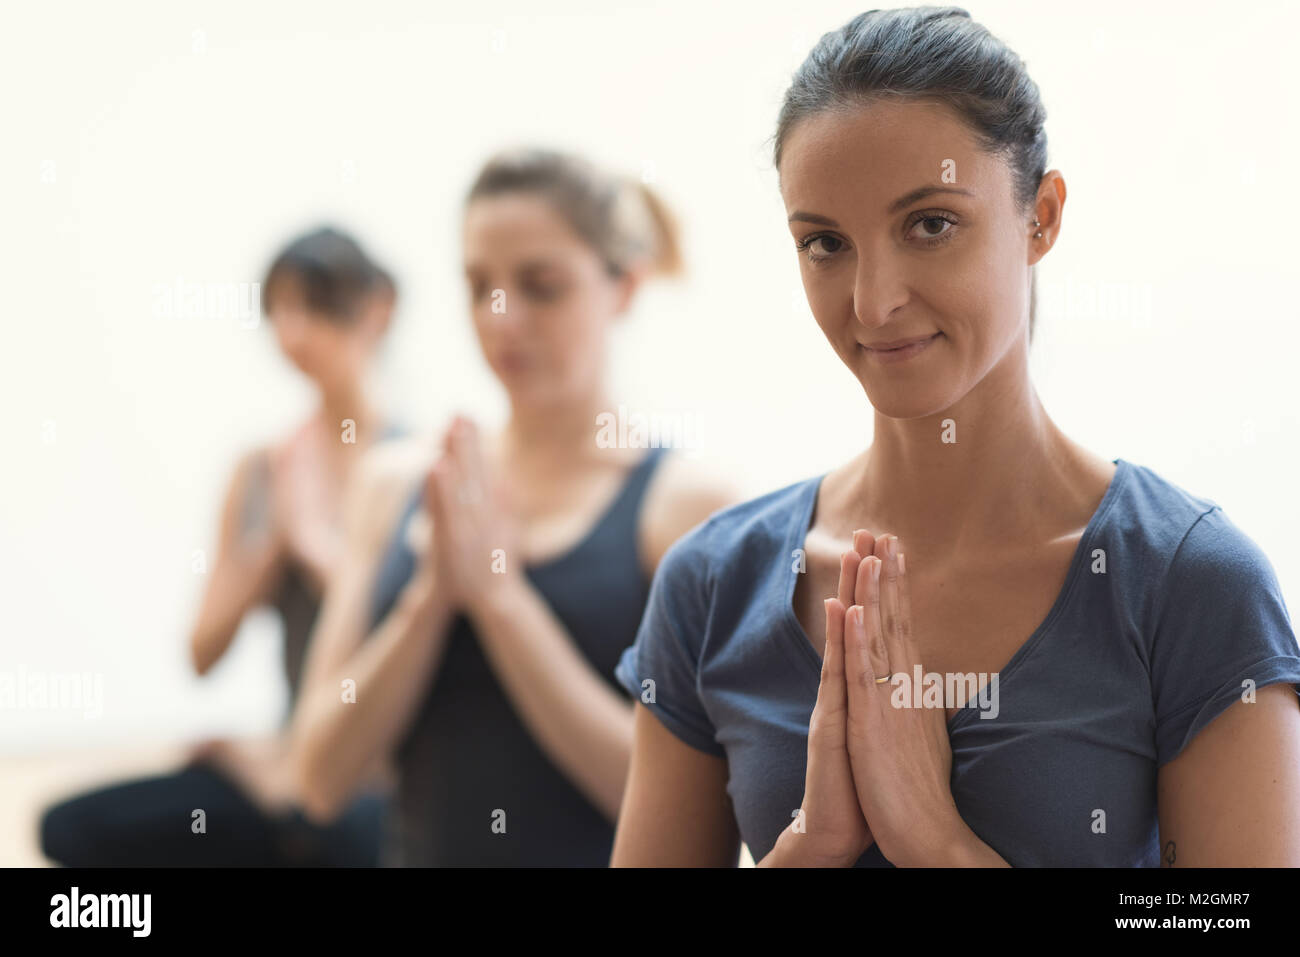 Women practicing yoga and mindfulness meditation together, they are clasping hands and relaxing, healthy lifestyle - Stock Image